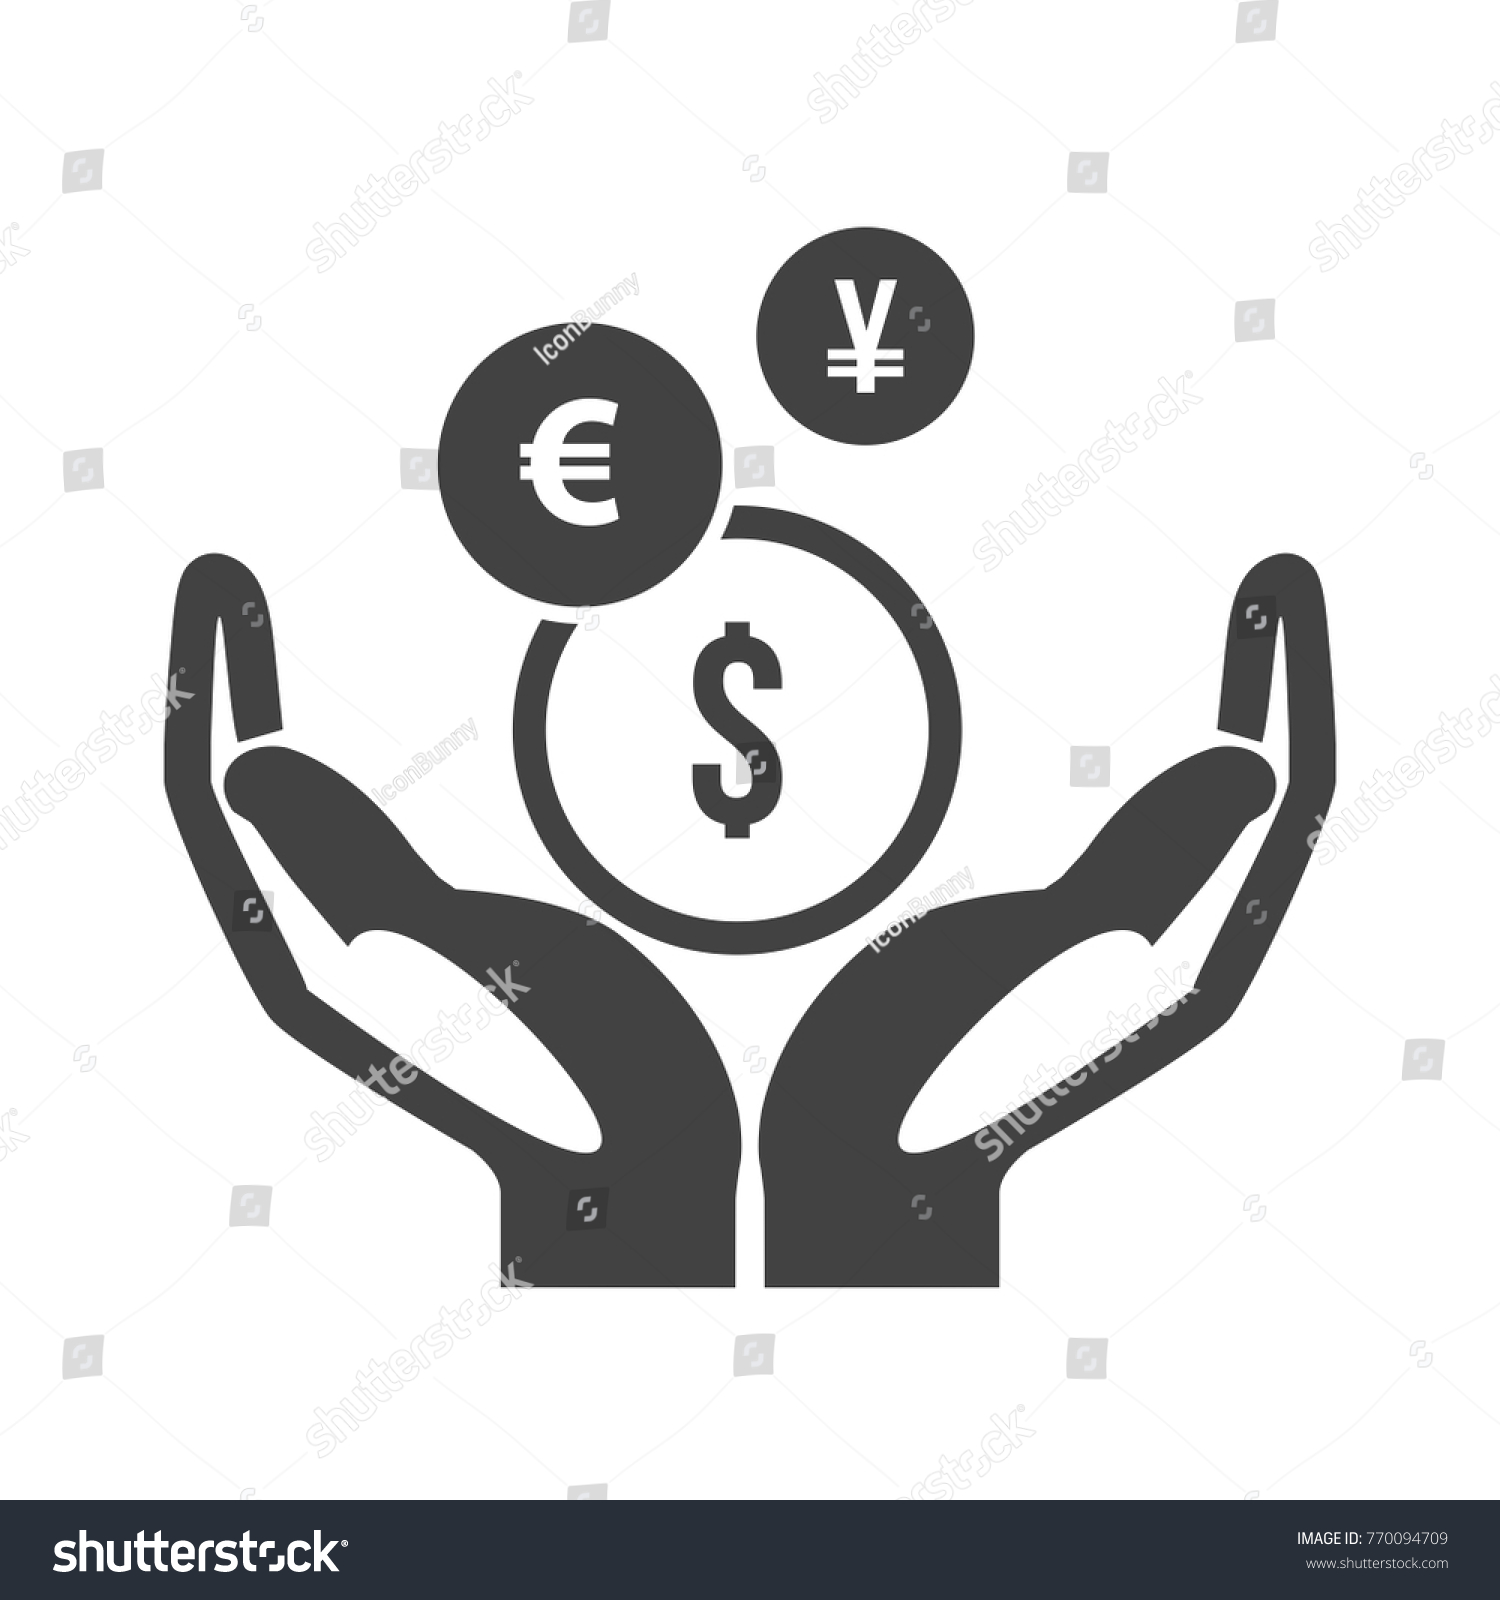 Mutual fund symbol stock vector 770094709 shutterstock mutual fund symbol biocorpaavc Images